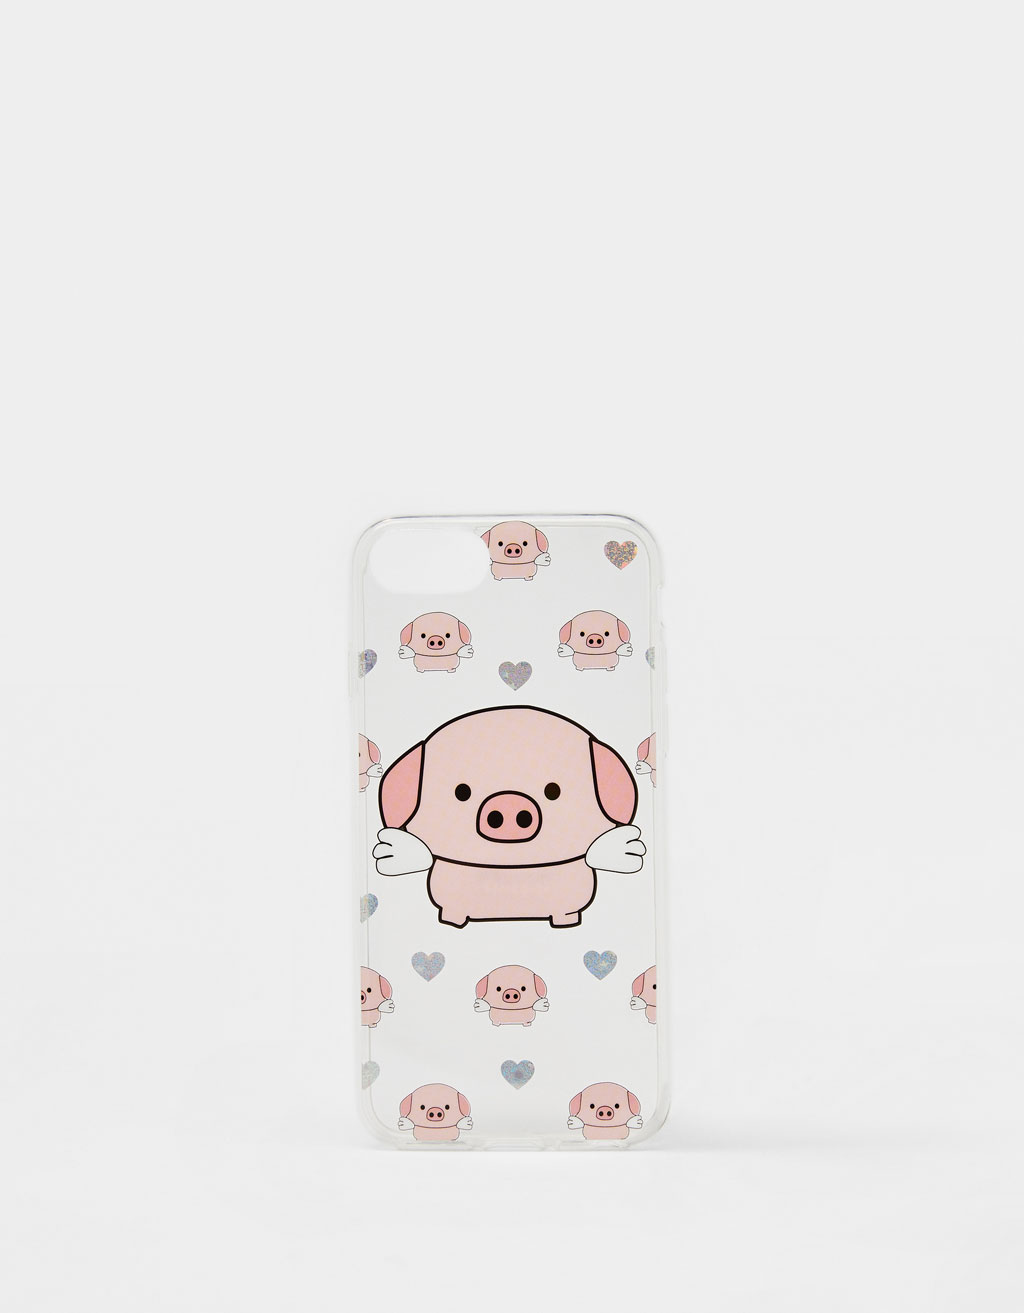 Little Pig iPhone 6/6s/7/8 case